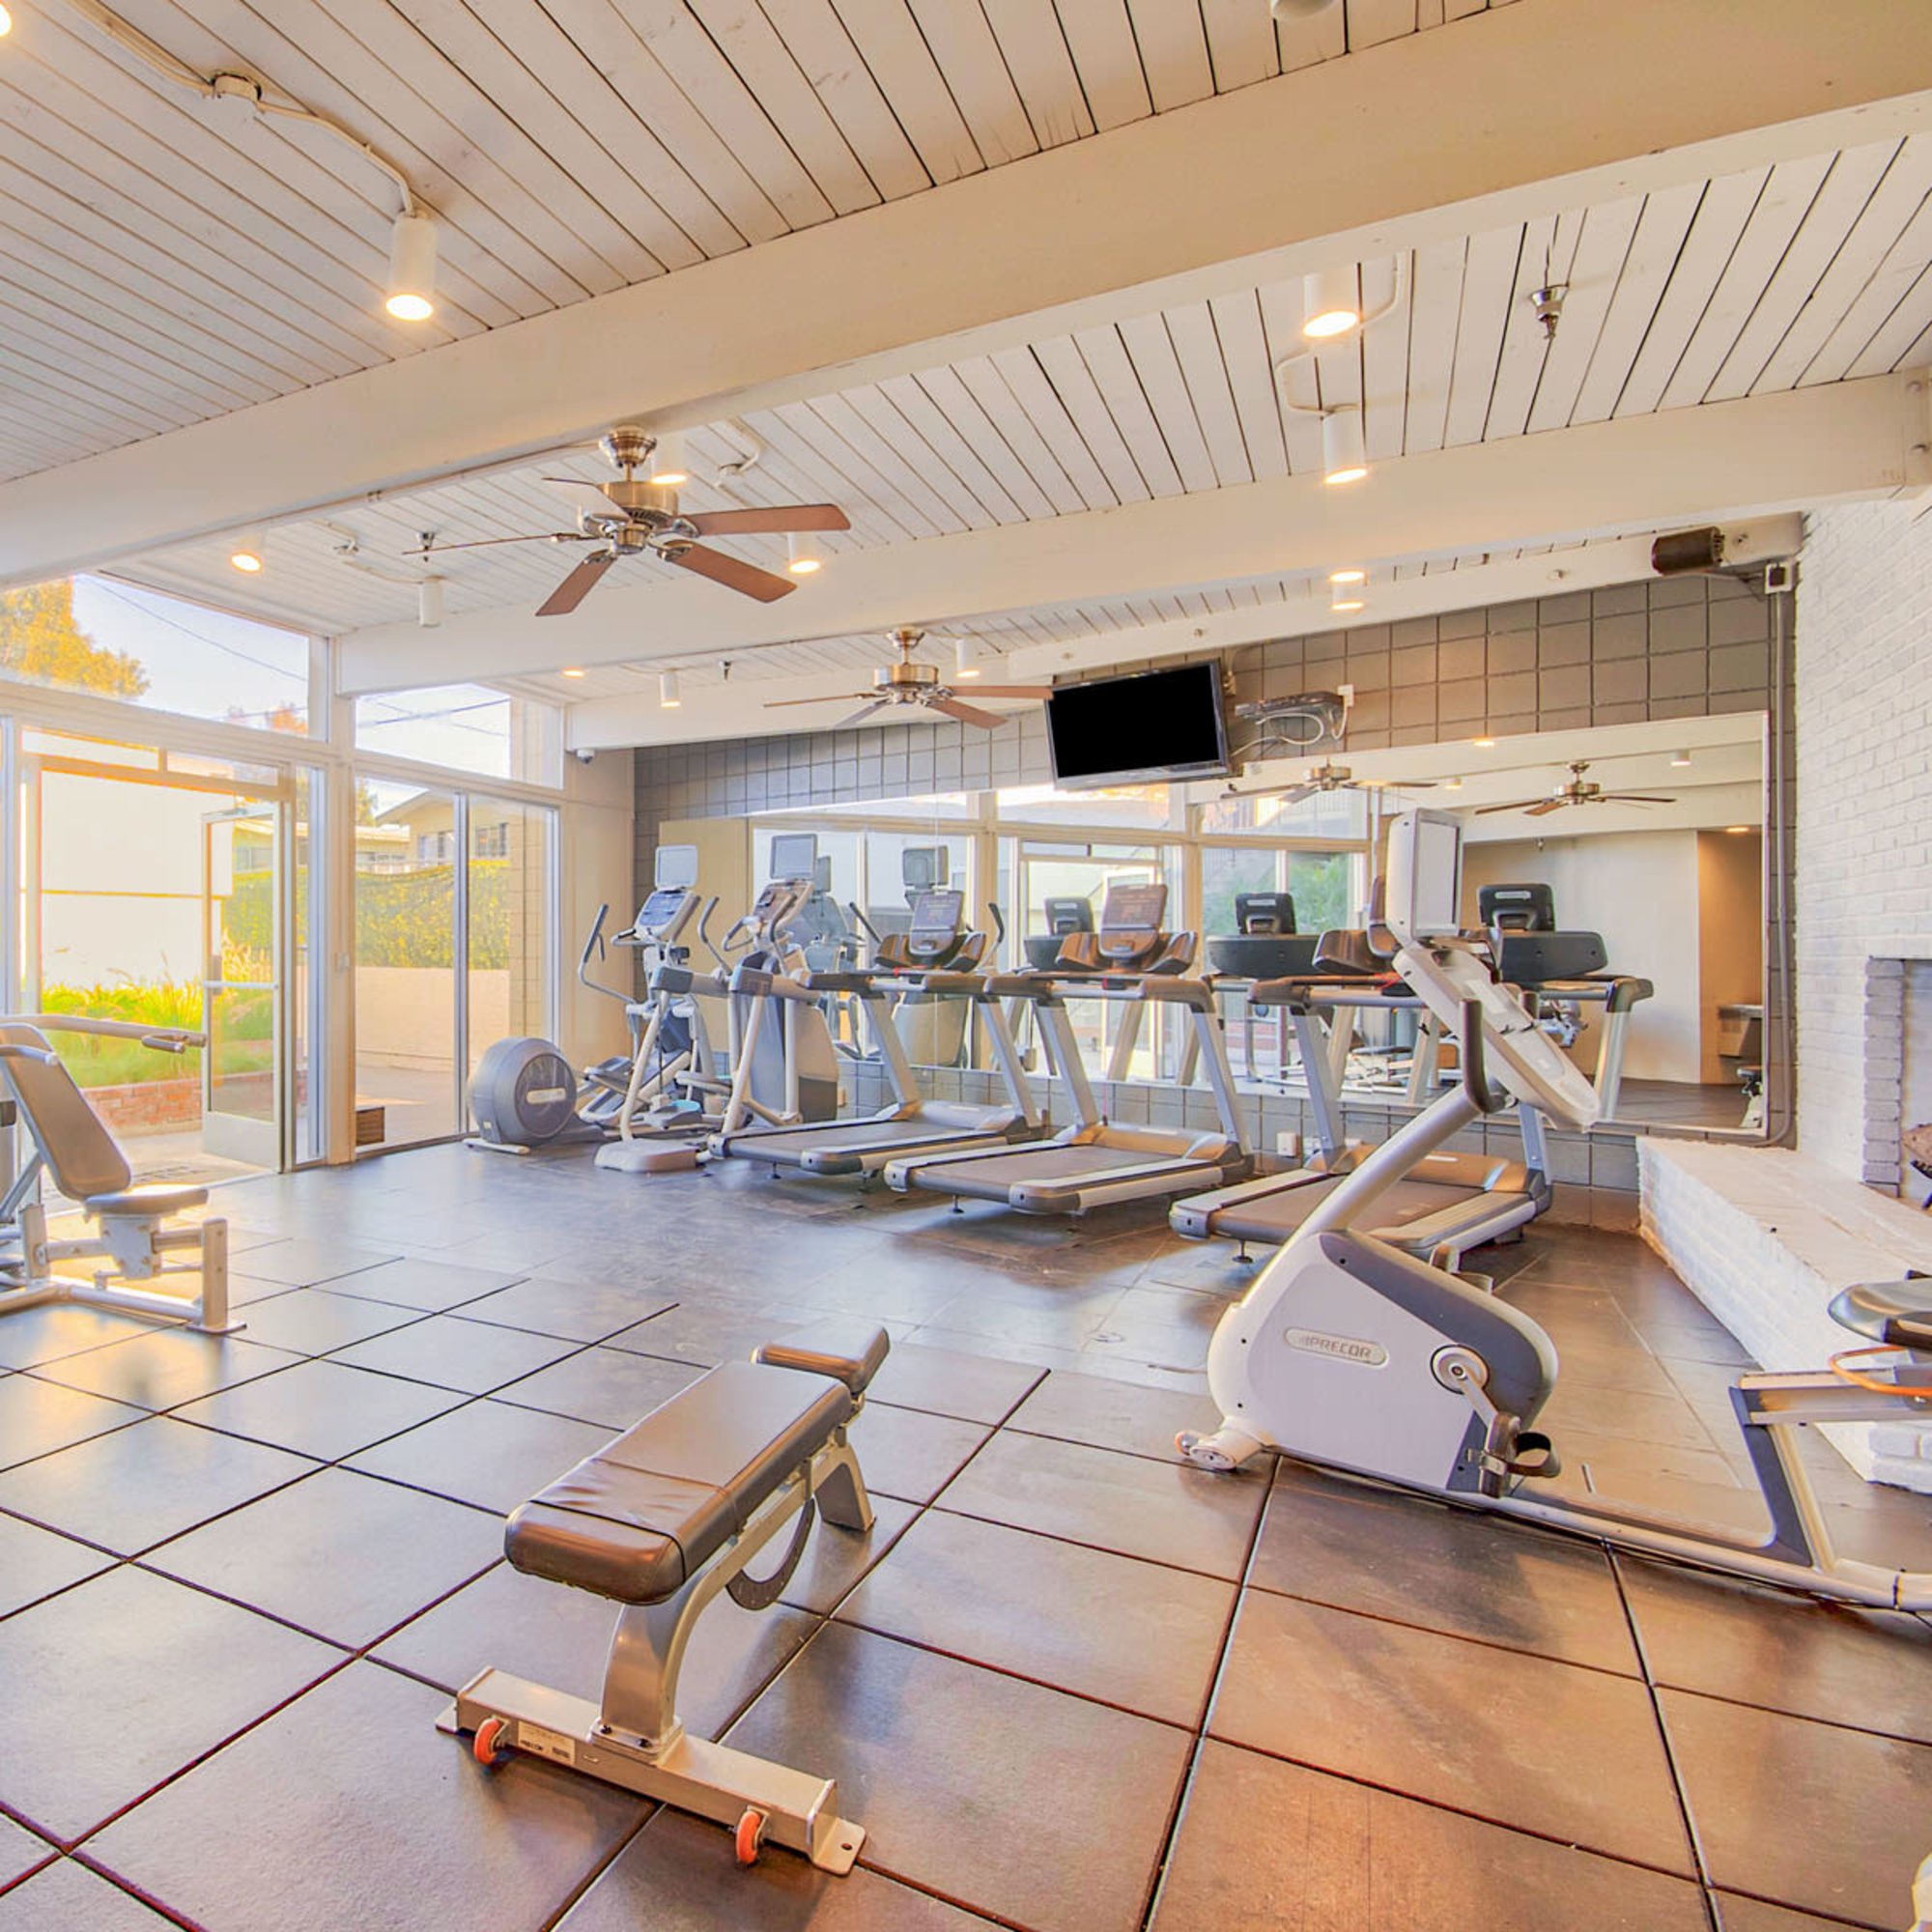 Well-equipped fitness center at Villa Vicente in Los Angeles, California